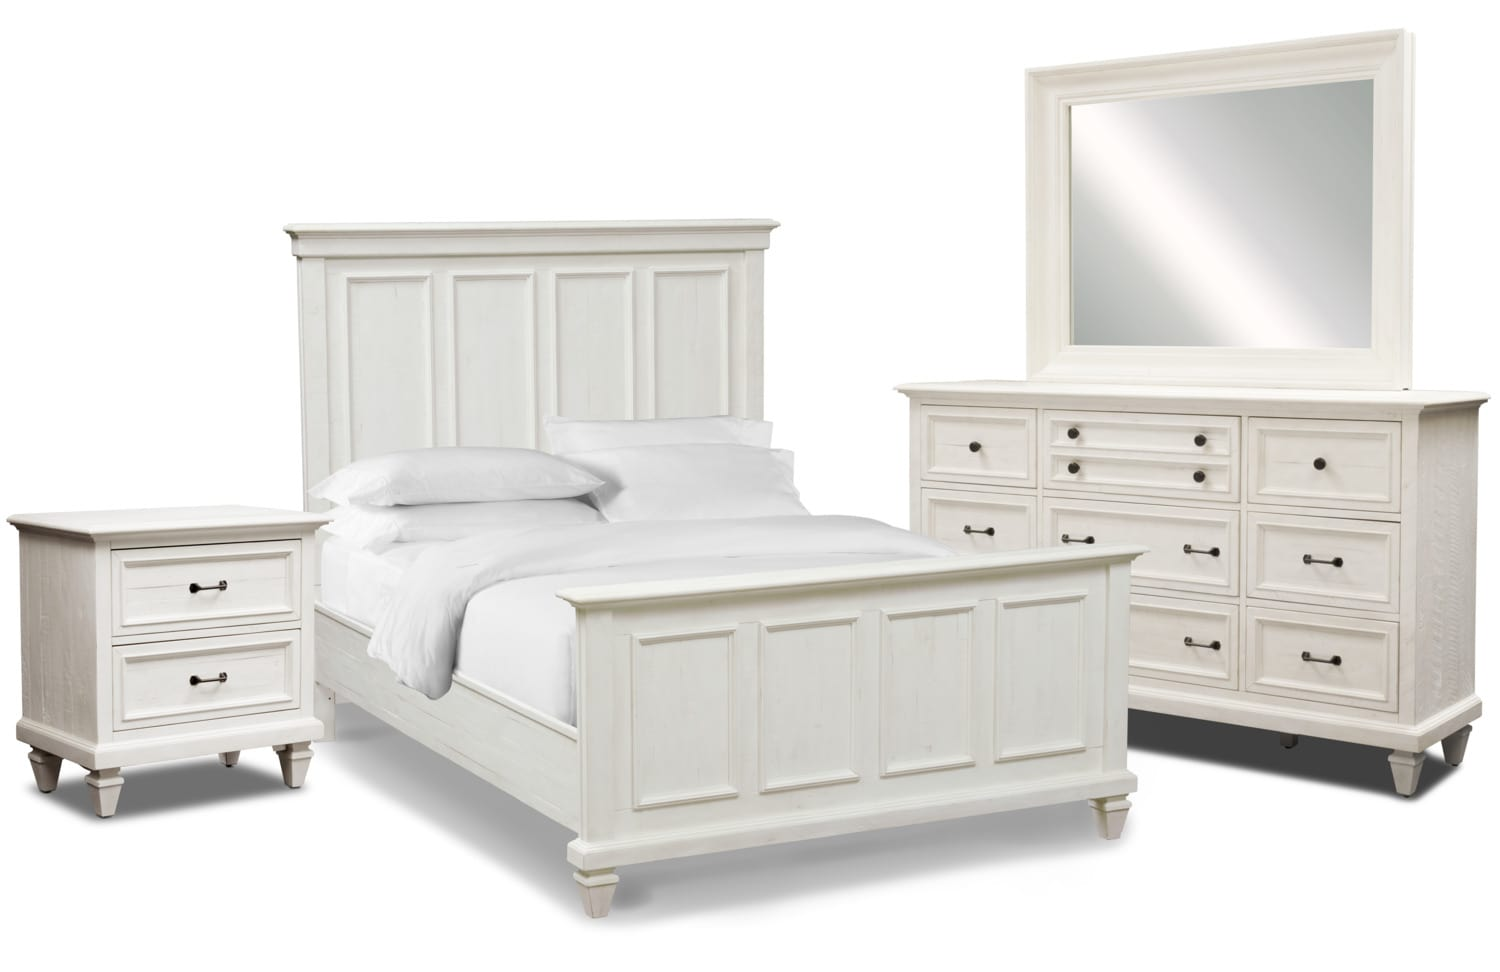 Harrison 6-Piece Bedroom Set with Nightstand, Dresser and Mirror ...